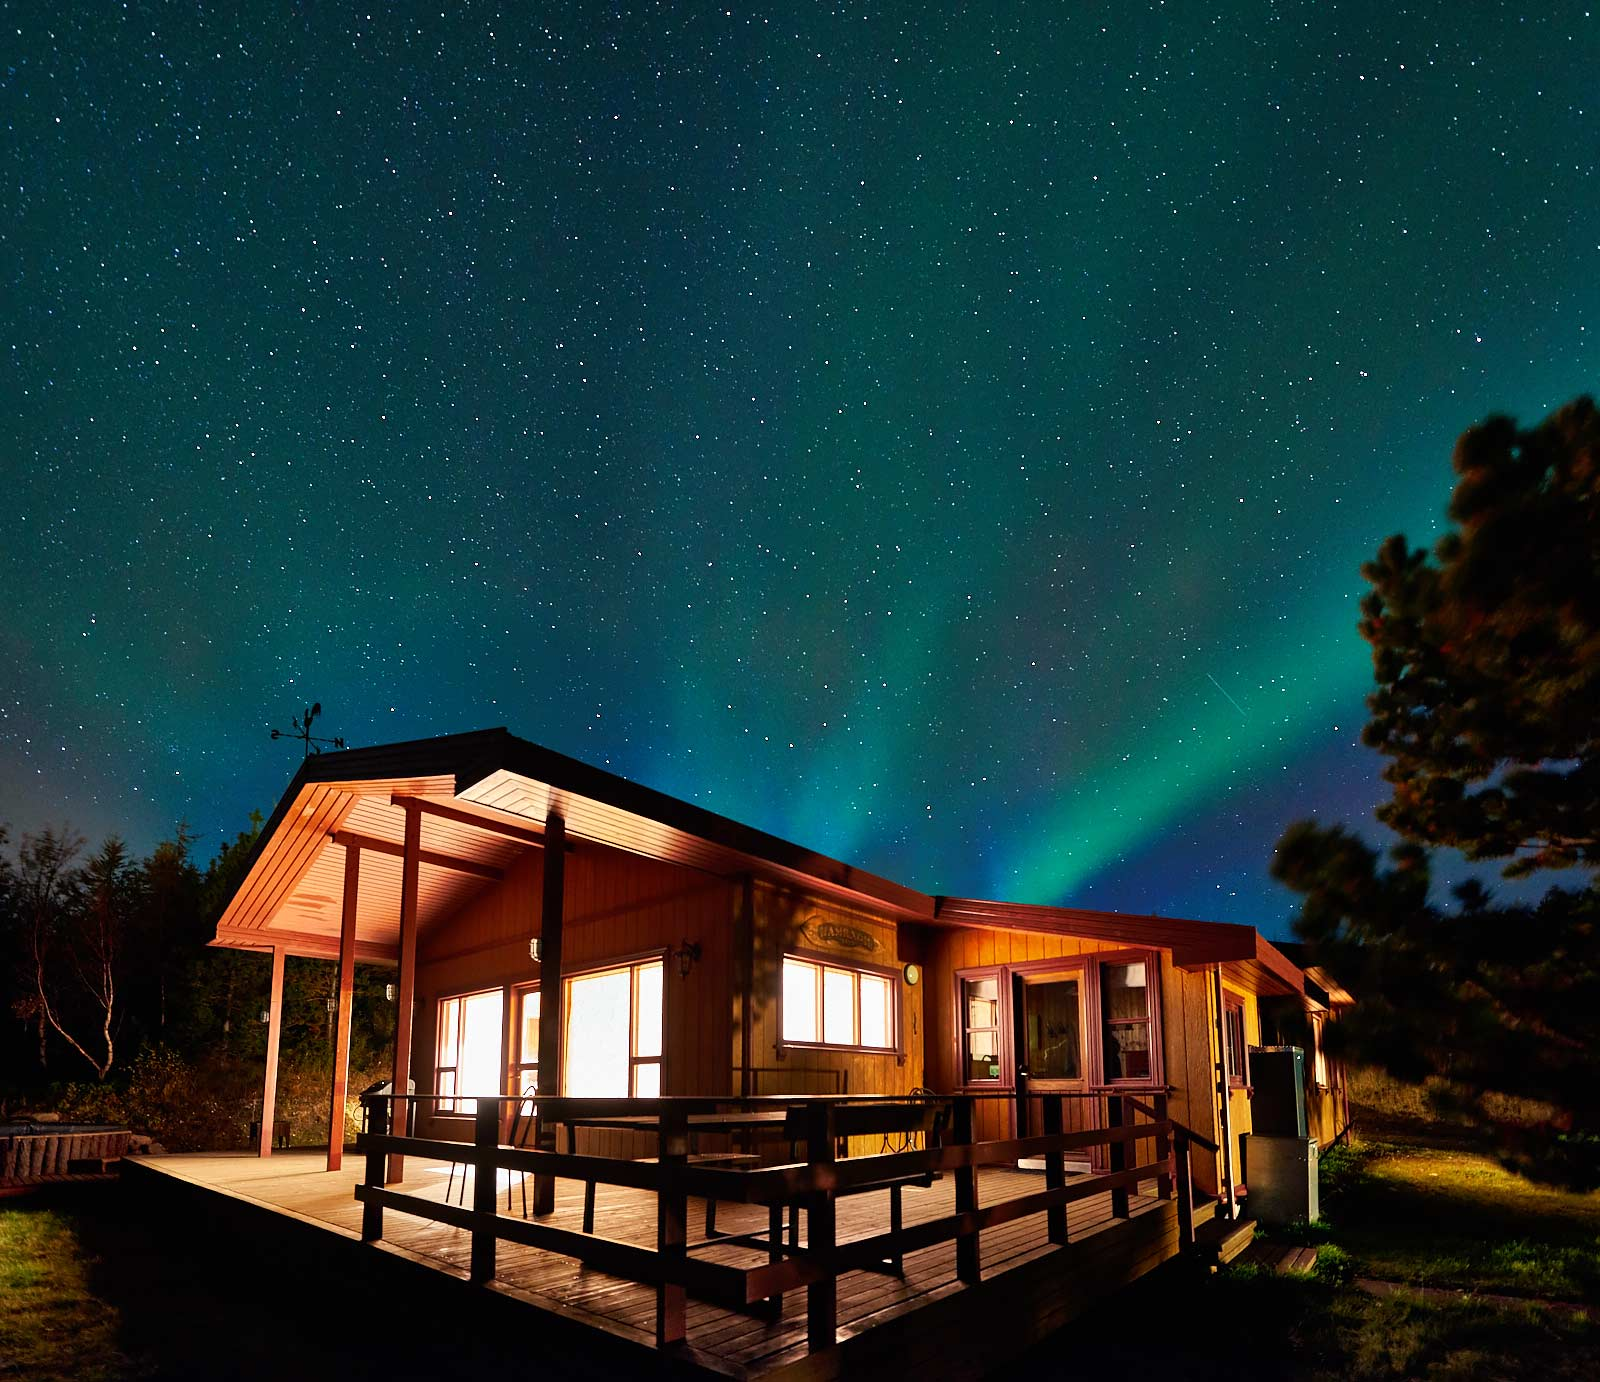 Northern Lights, Aurora Borealis, Hamragil Lodge, Iceland